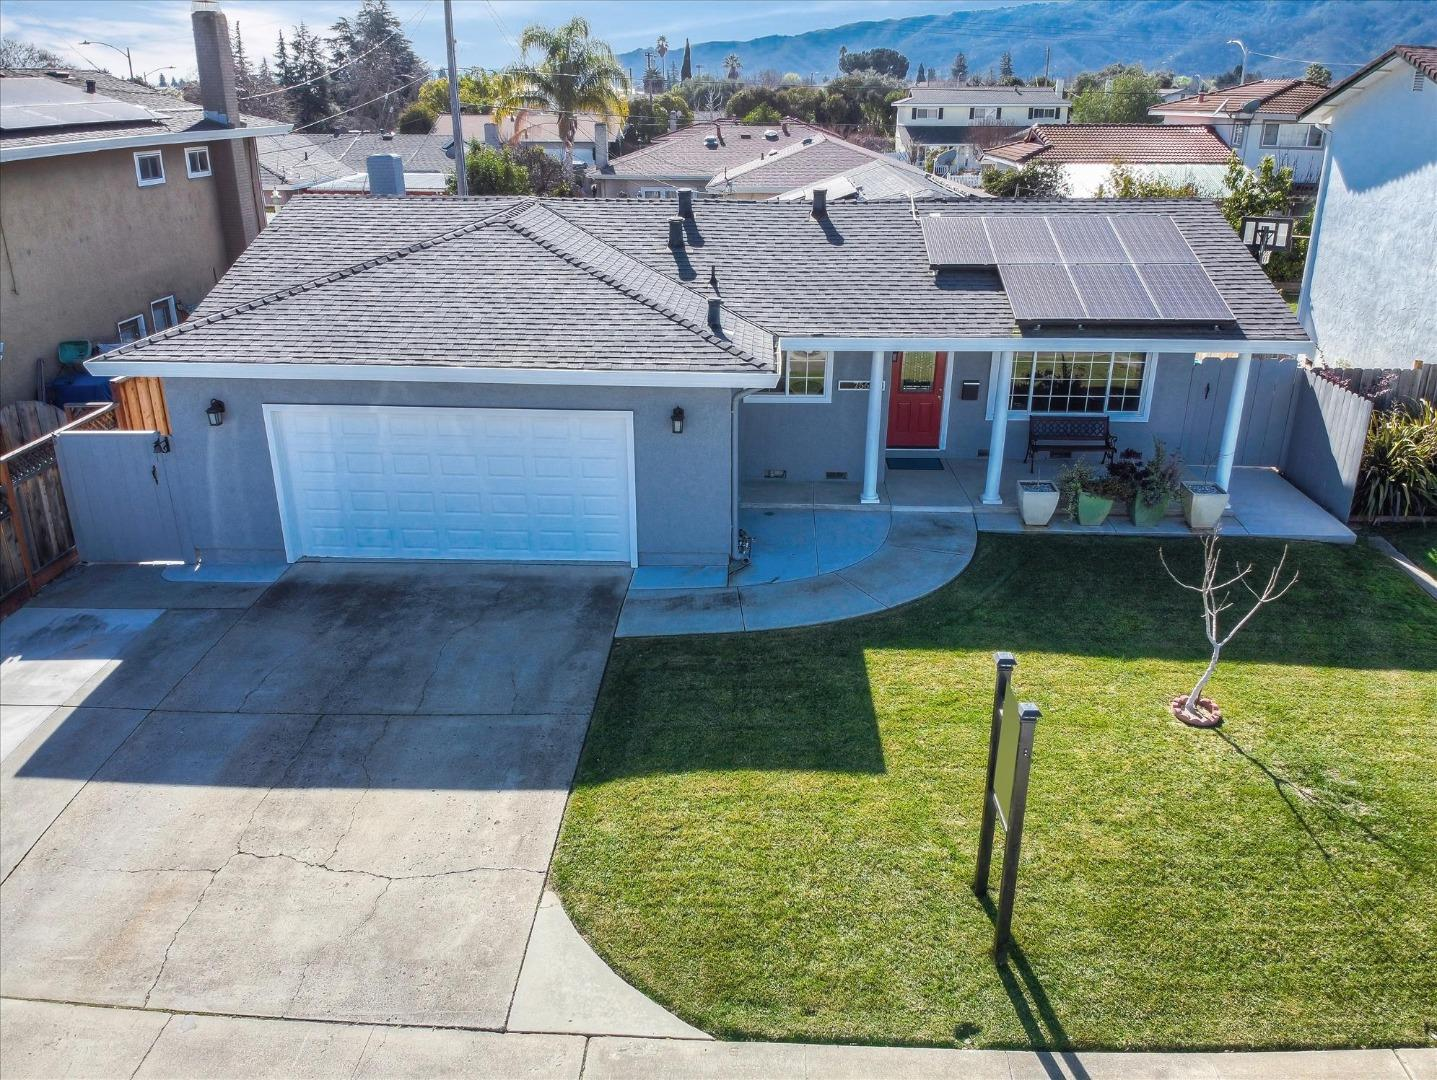 756 RAMONA WAY, GILROY, CA 95020